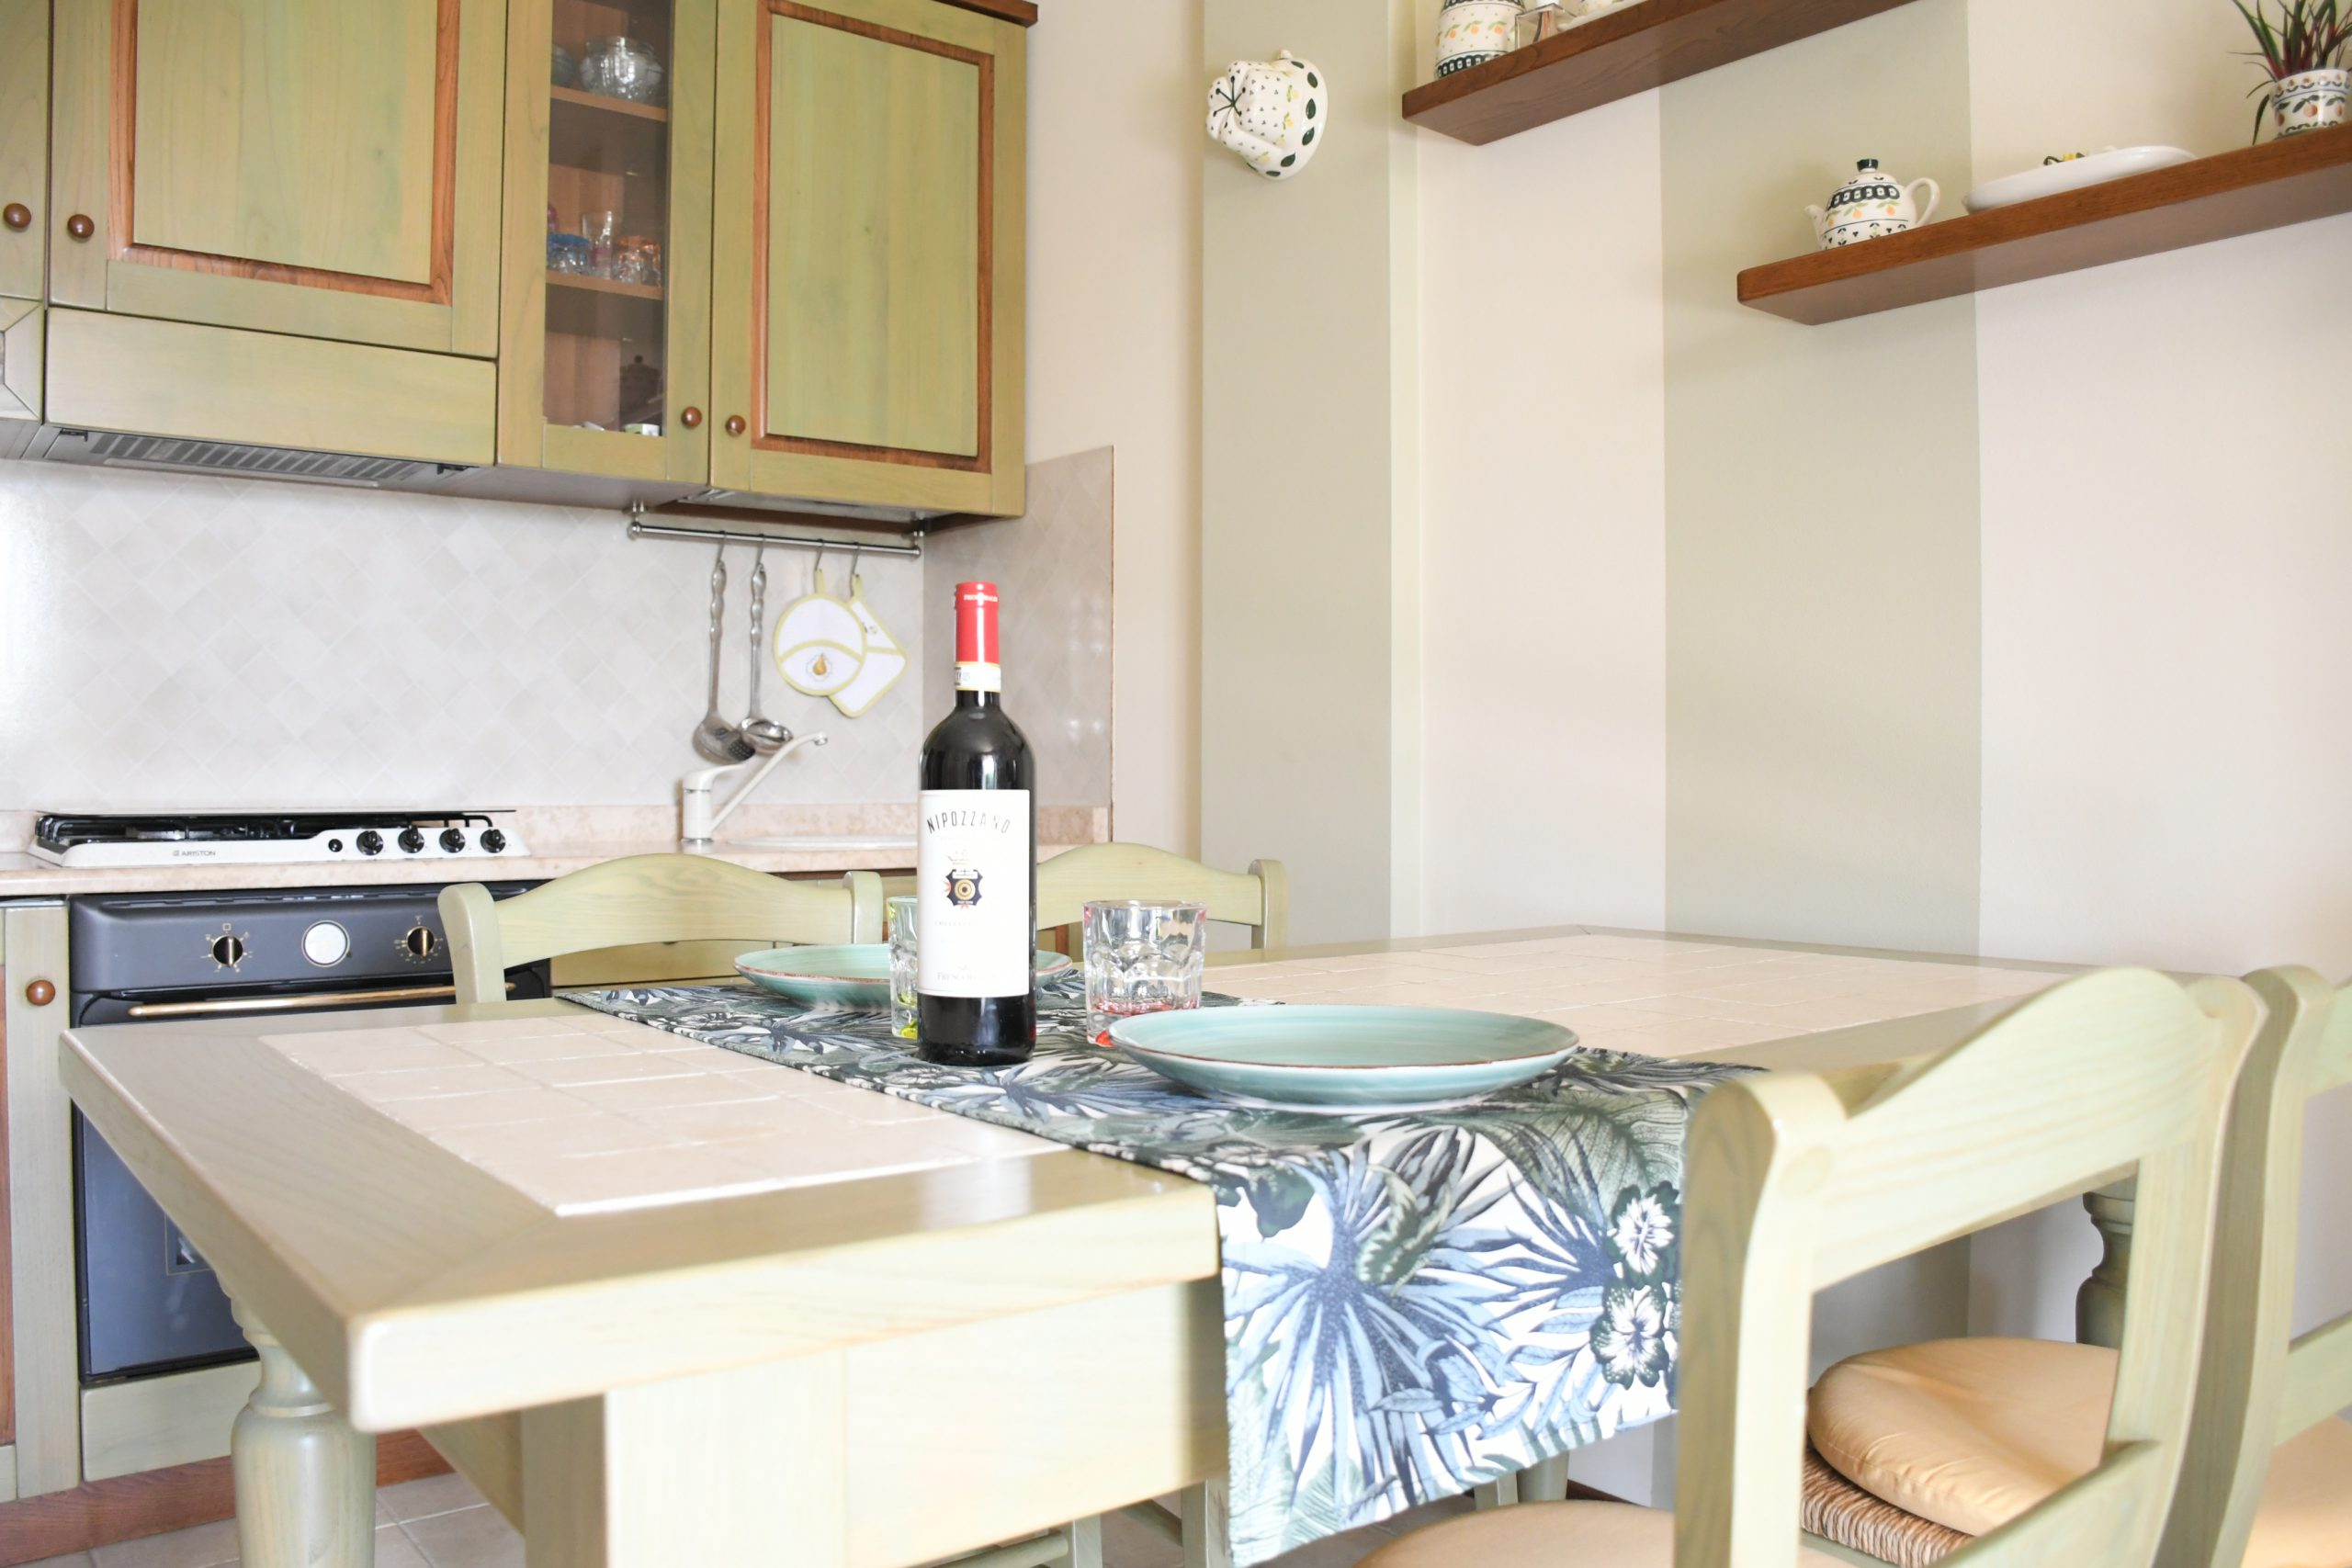 SIMONA'S HOME Apartment in Desenzano and Sirmione - Living Room Dining table